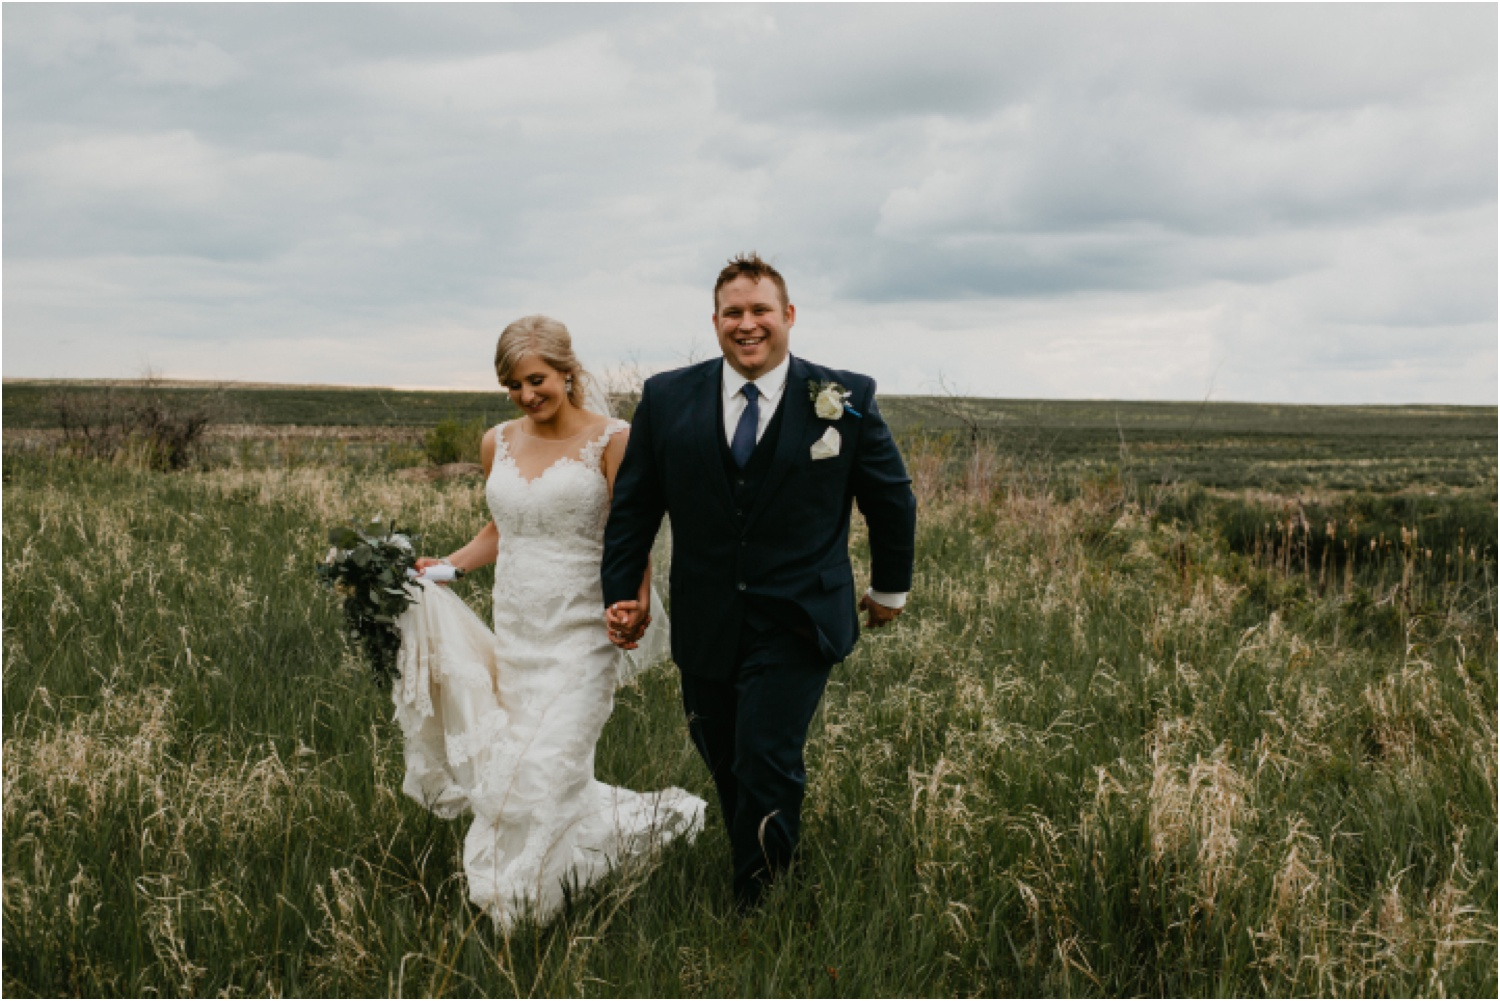 Kailey_Carter_Saskatchewan_Wedding (493 of 727).jpg